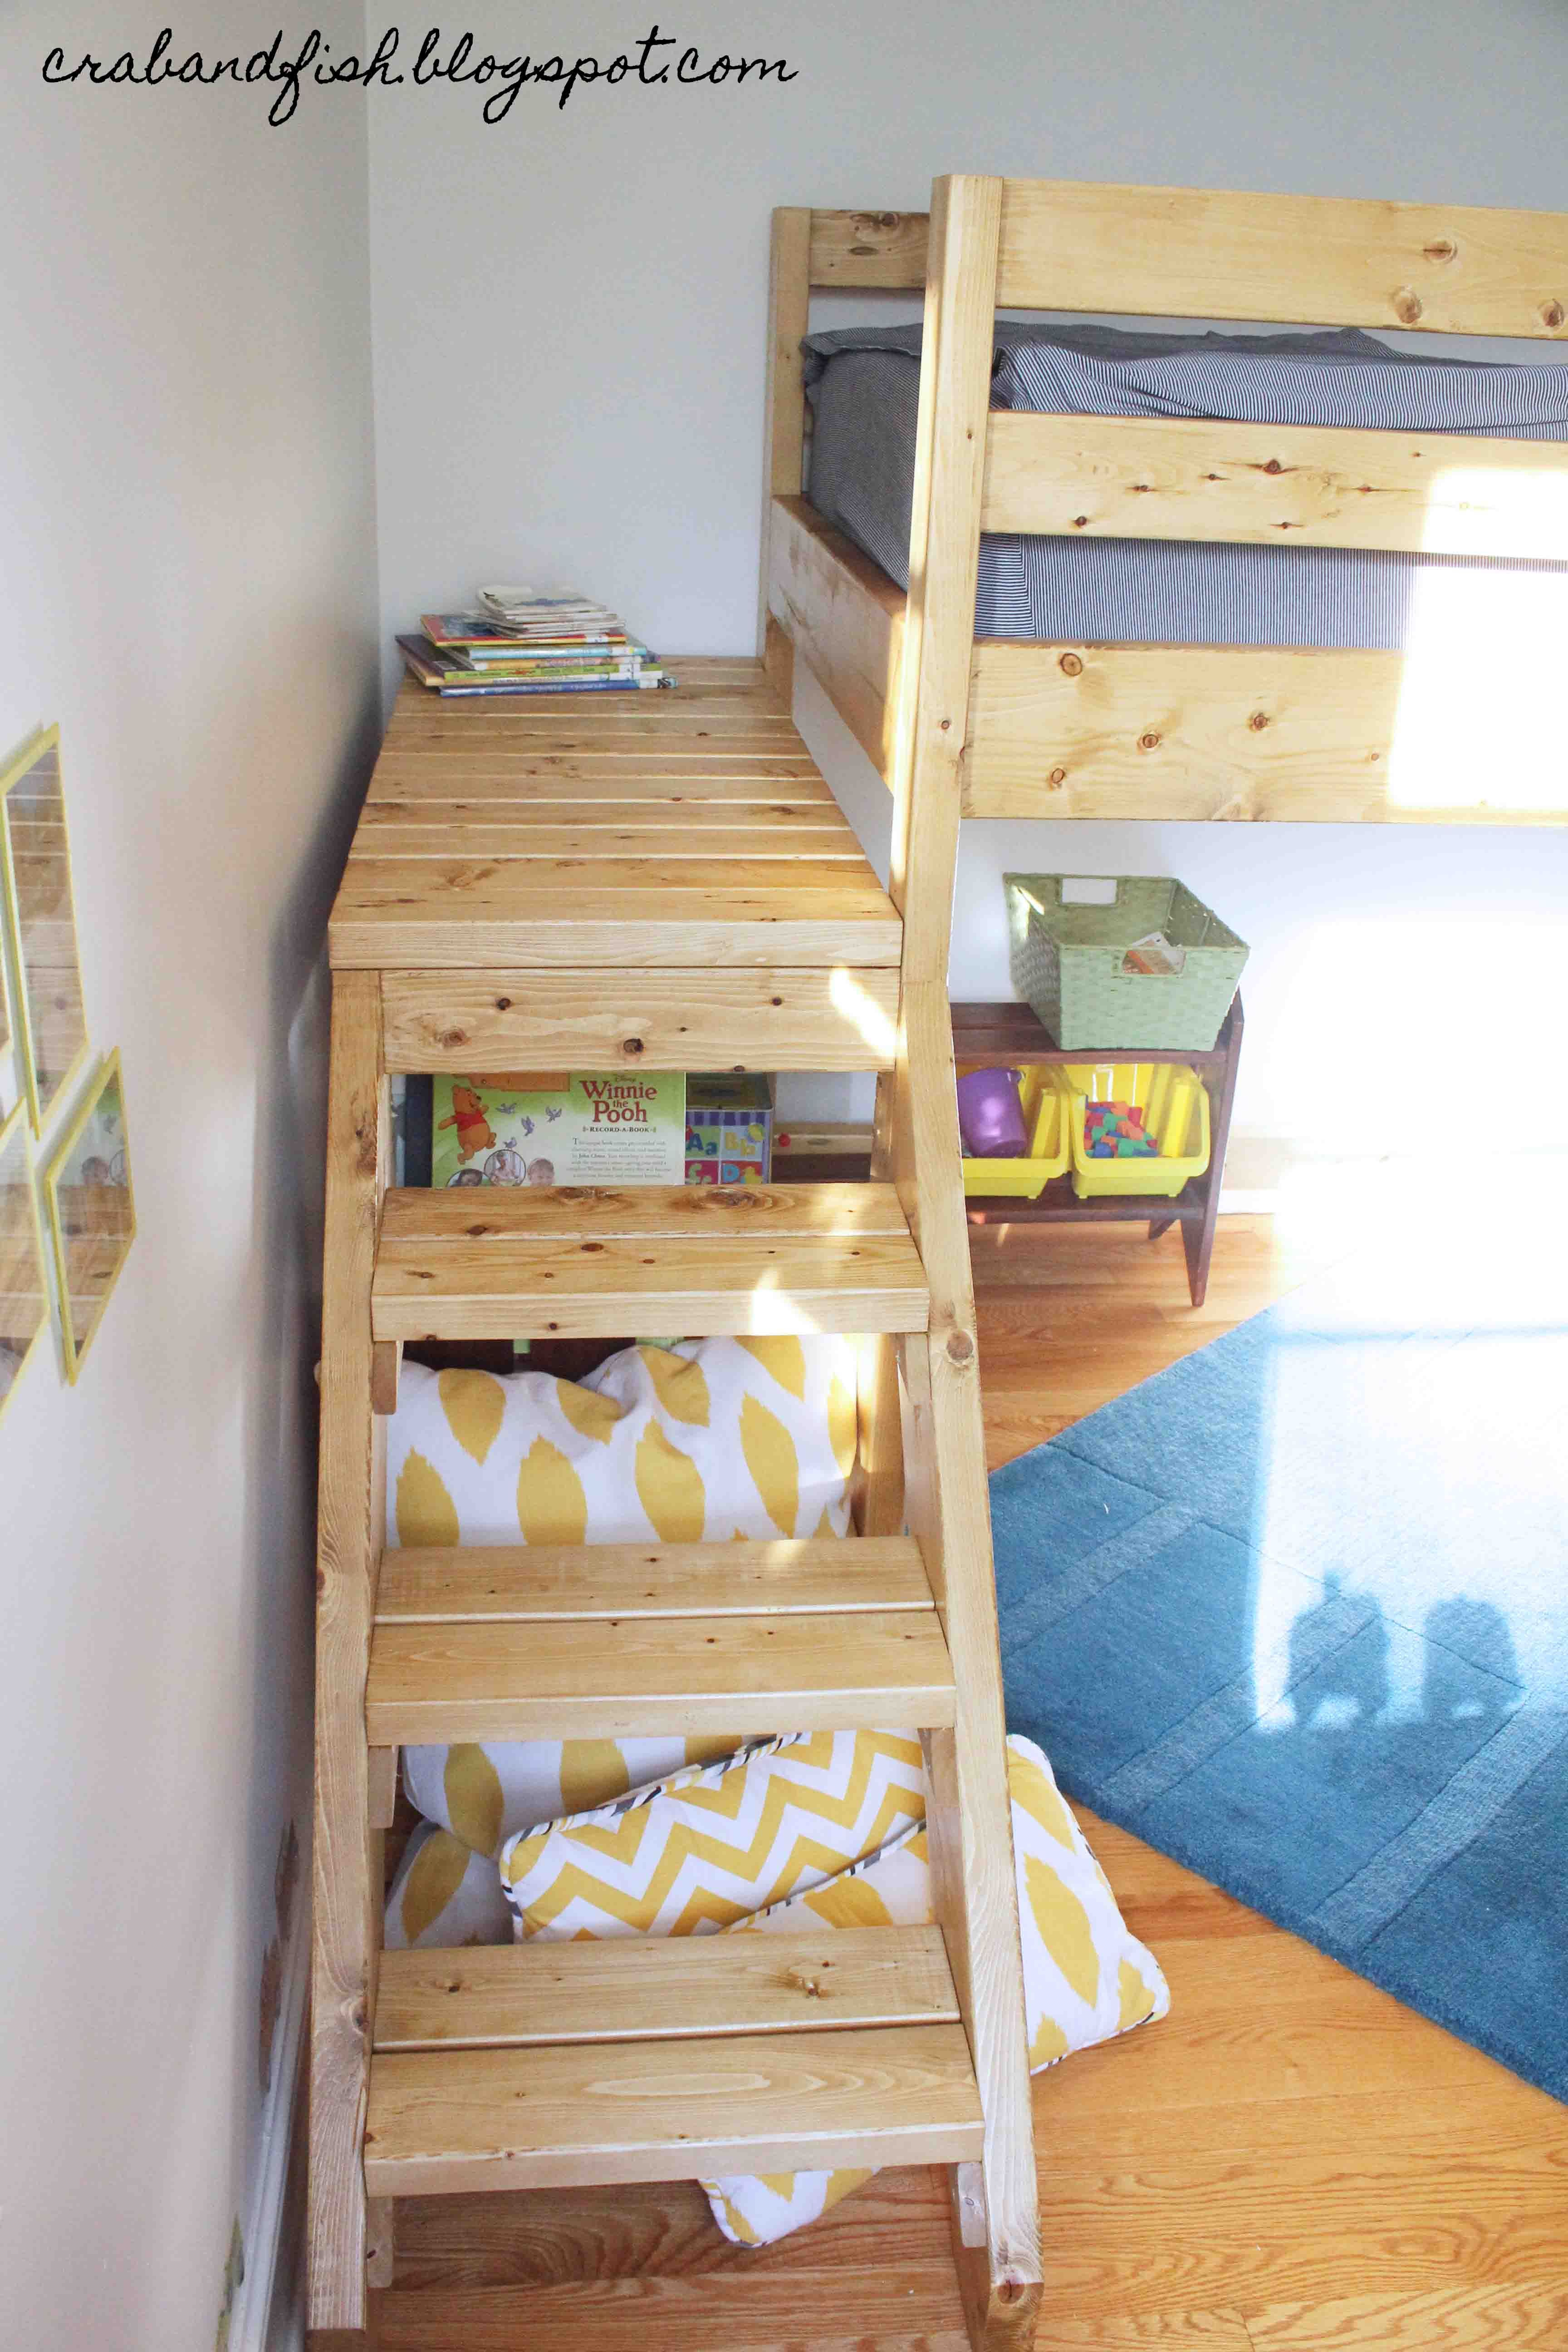 Loft bed boy room ideas  Pin by Aleshka Grusy on home  Pinterest  Toddler loft beds White